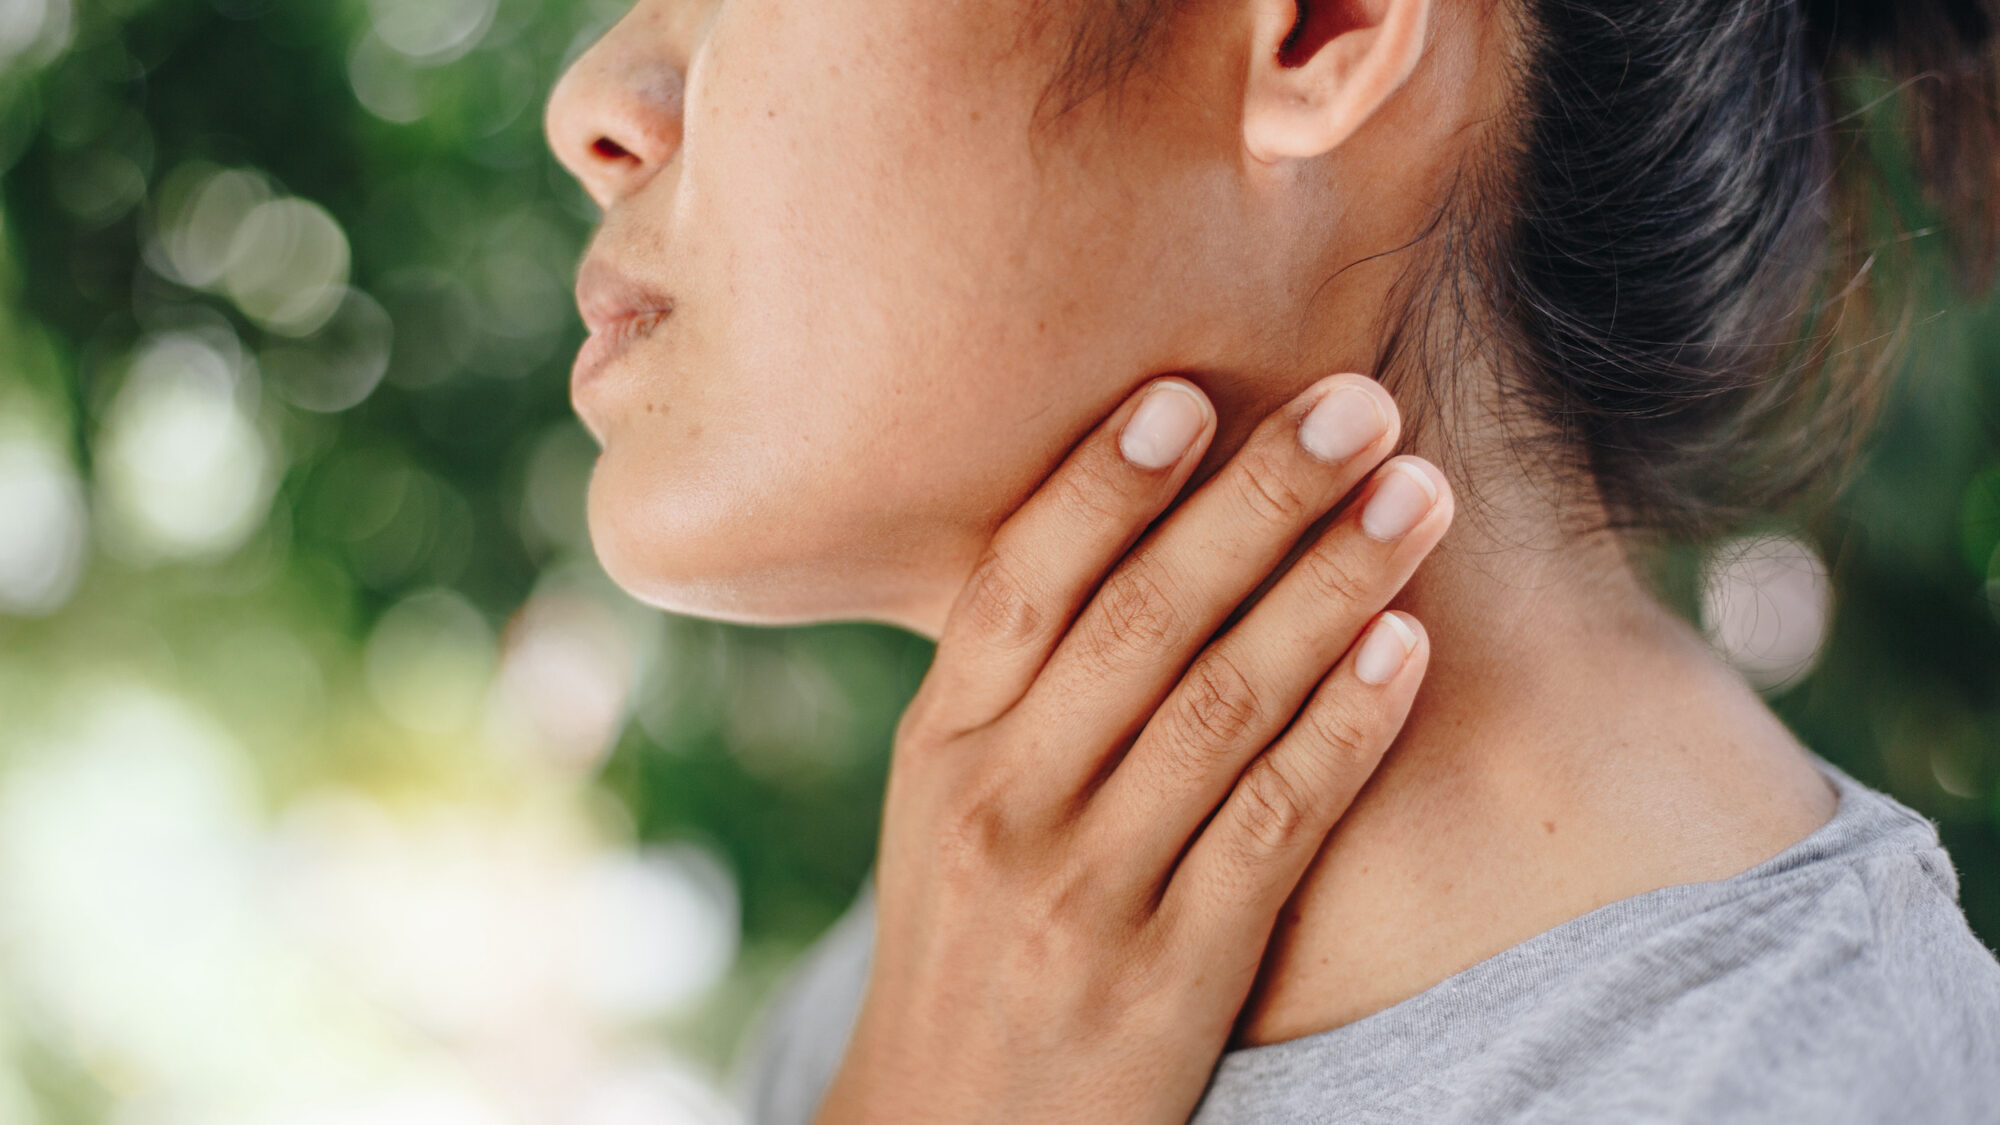 Woman with sore throat touches neck wonder if it is head and neck cancer | cCARE | San Diego & Fresno, CA